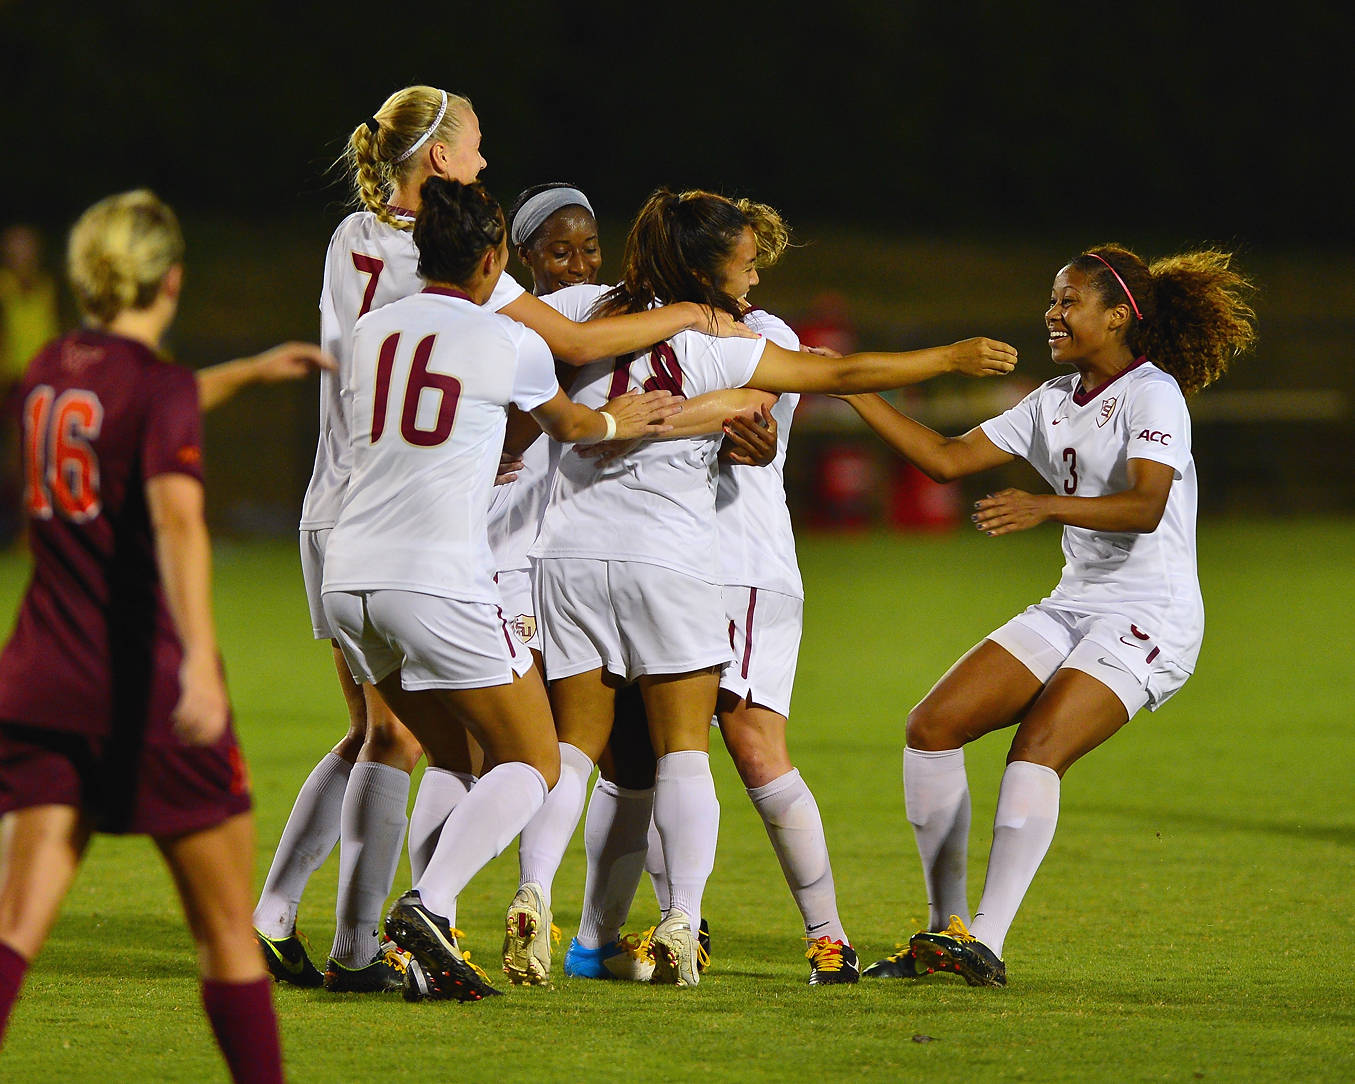 The Seminoles celebrate after the first goal of the game scored by Hikaru Murakami